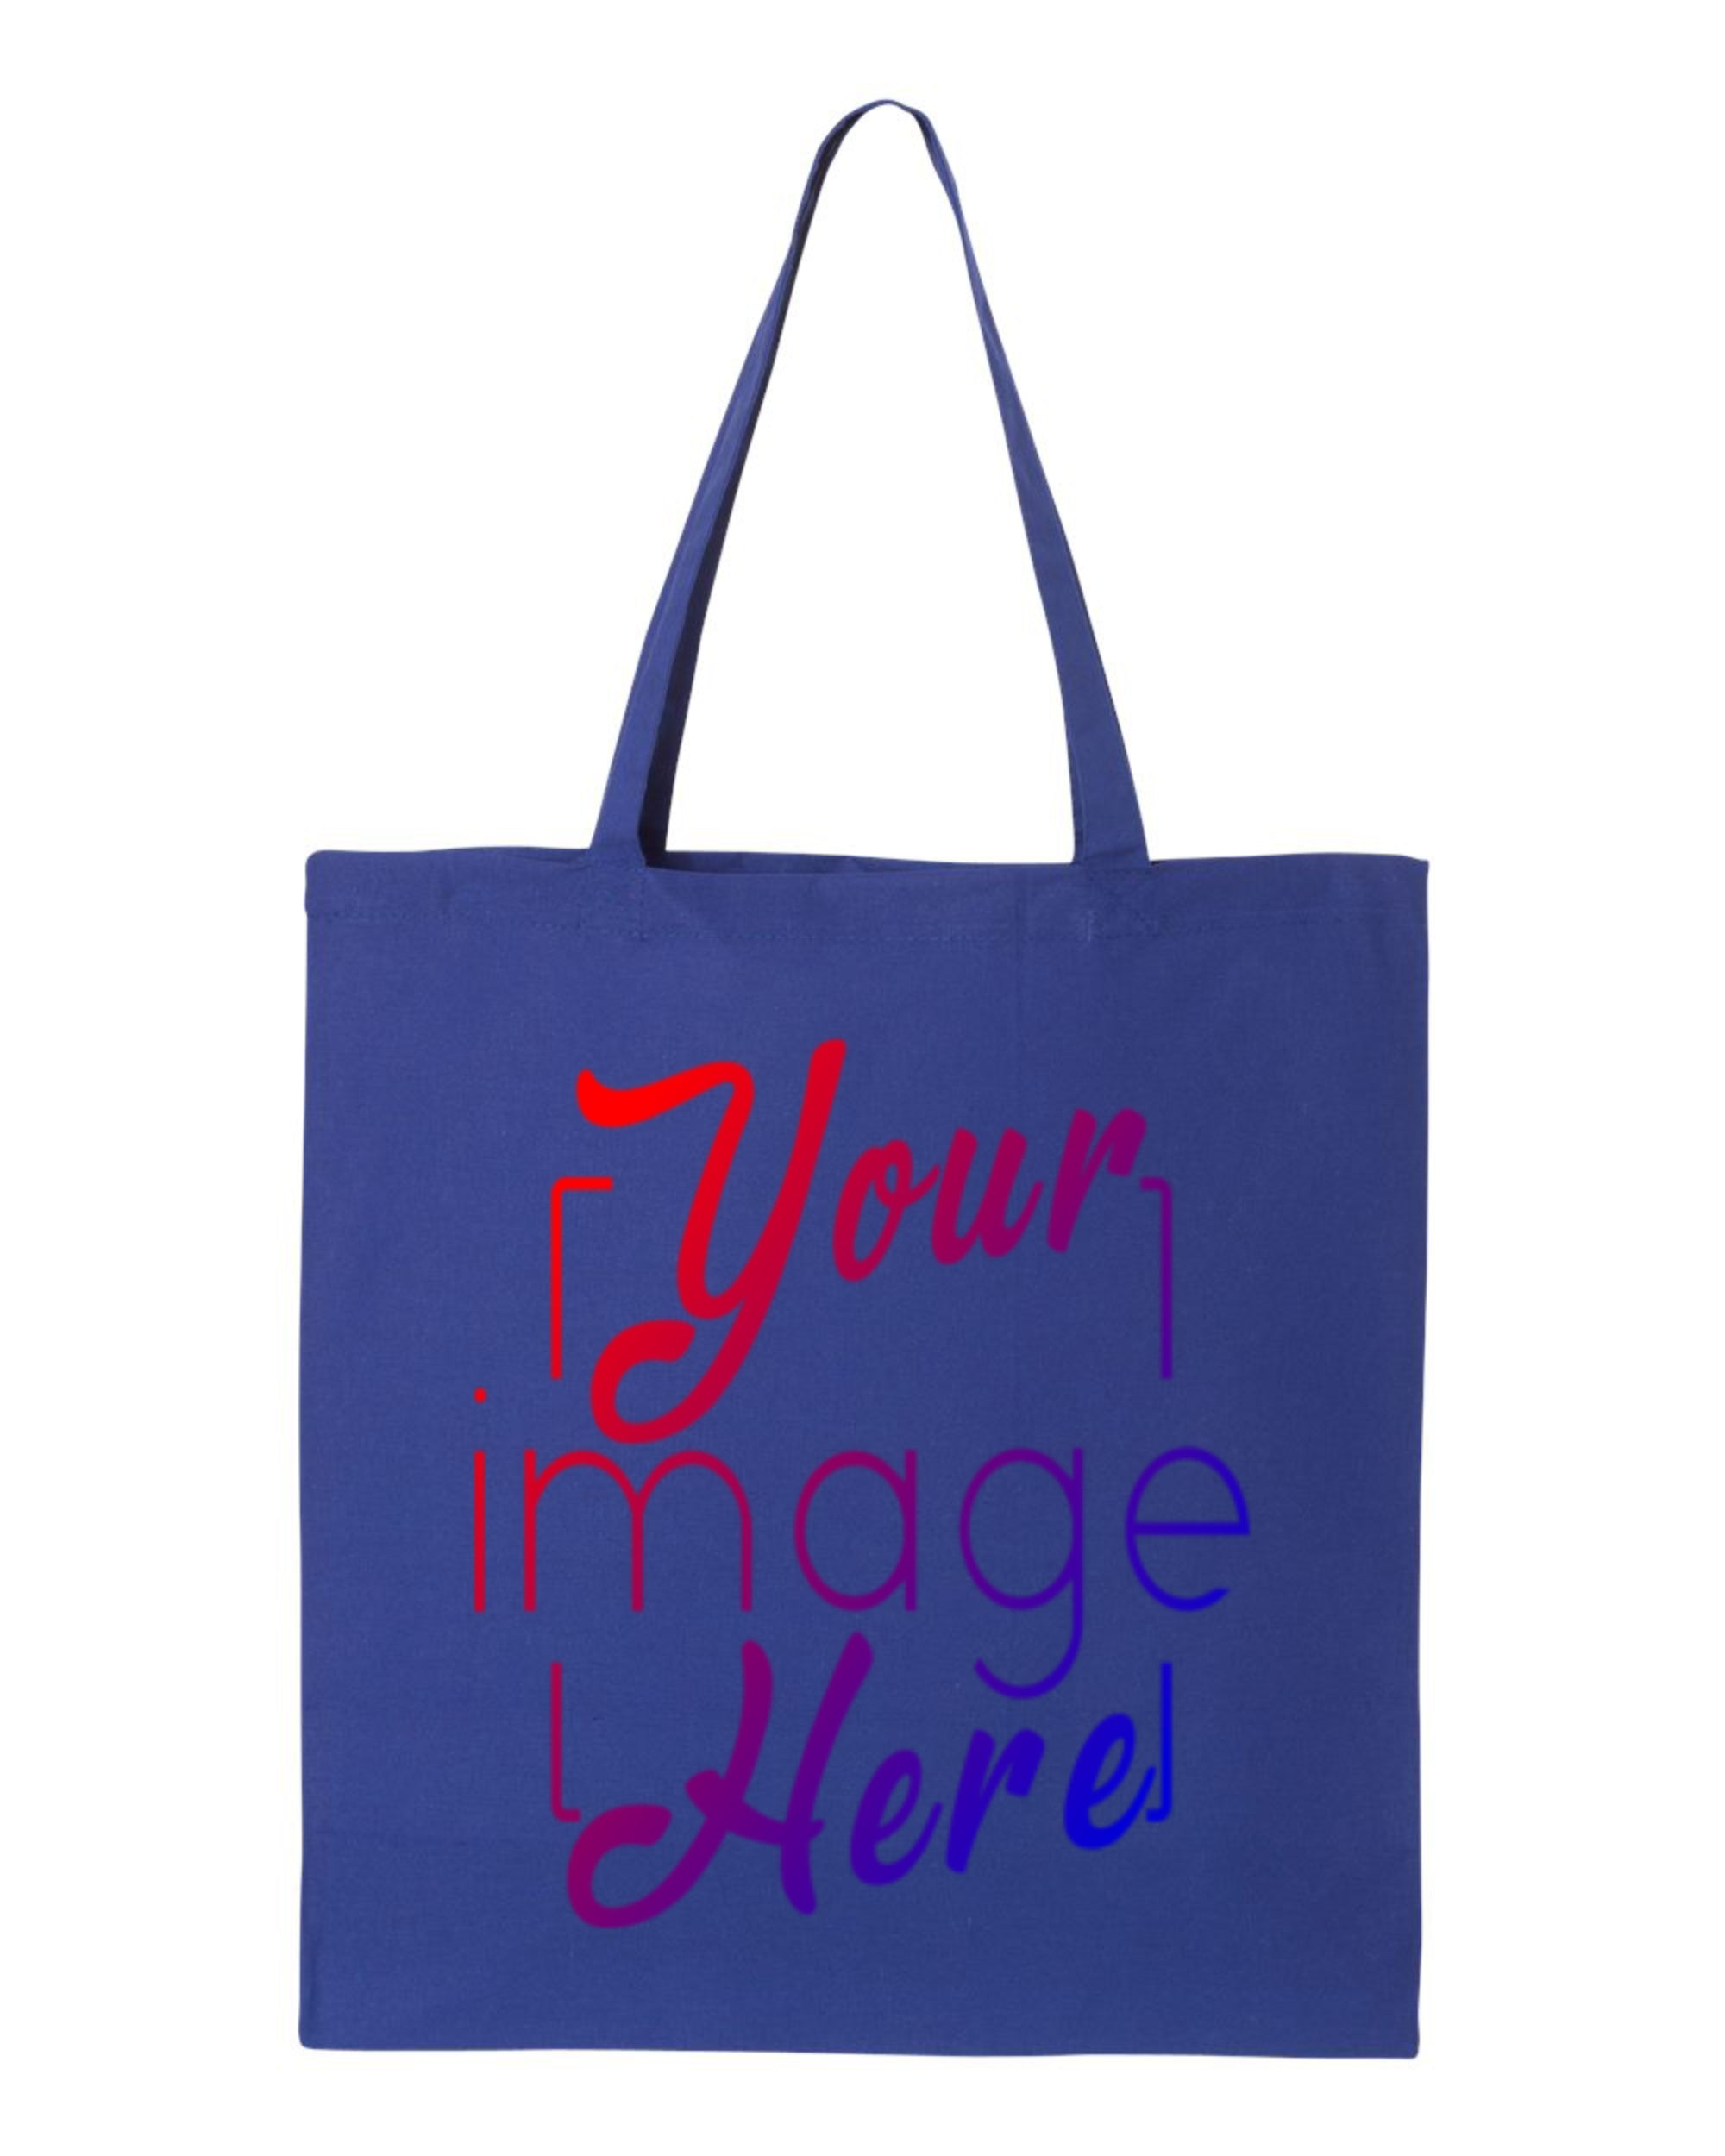 Flat Image of Canvas Tote Bag for Custom Printing